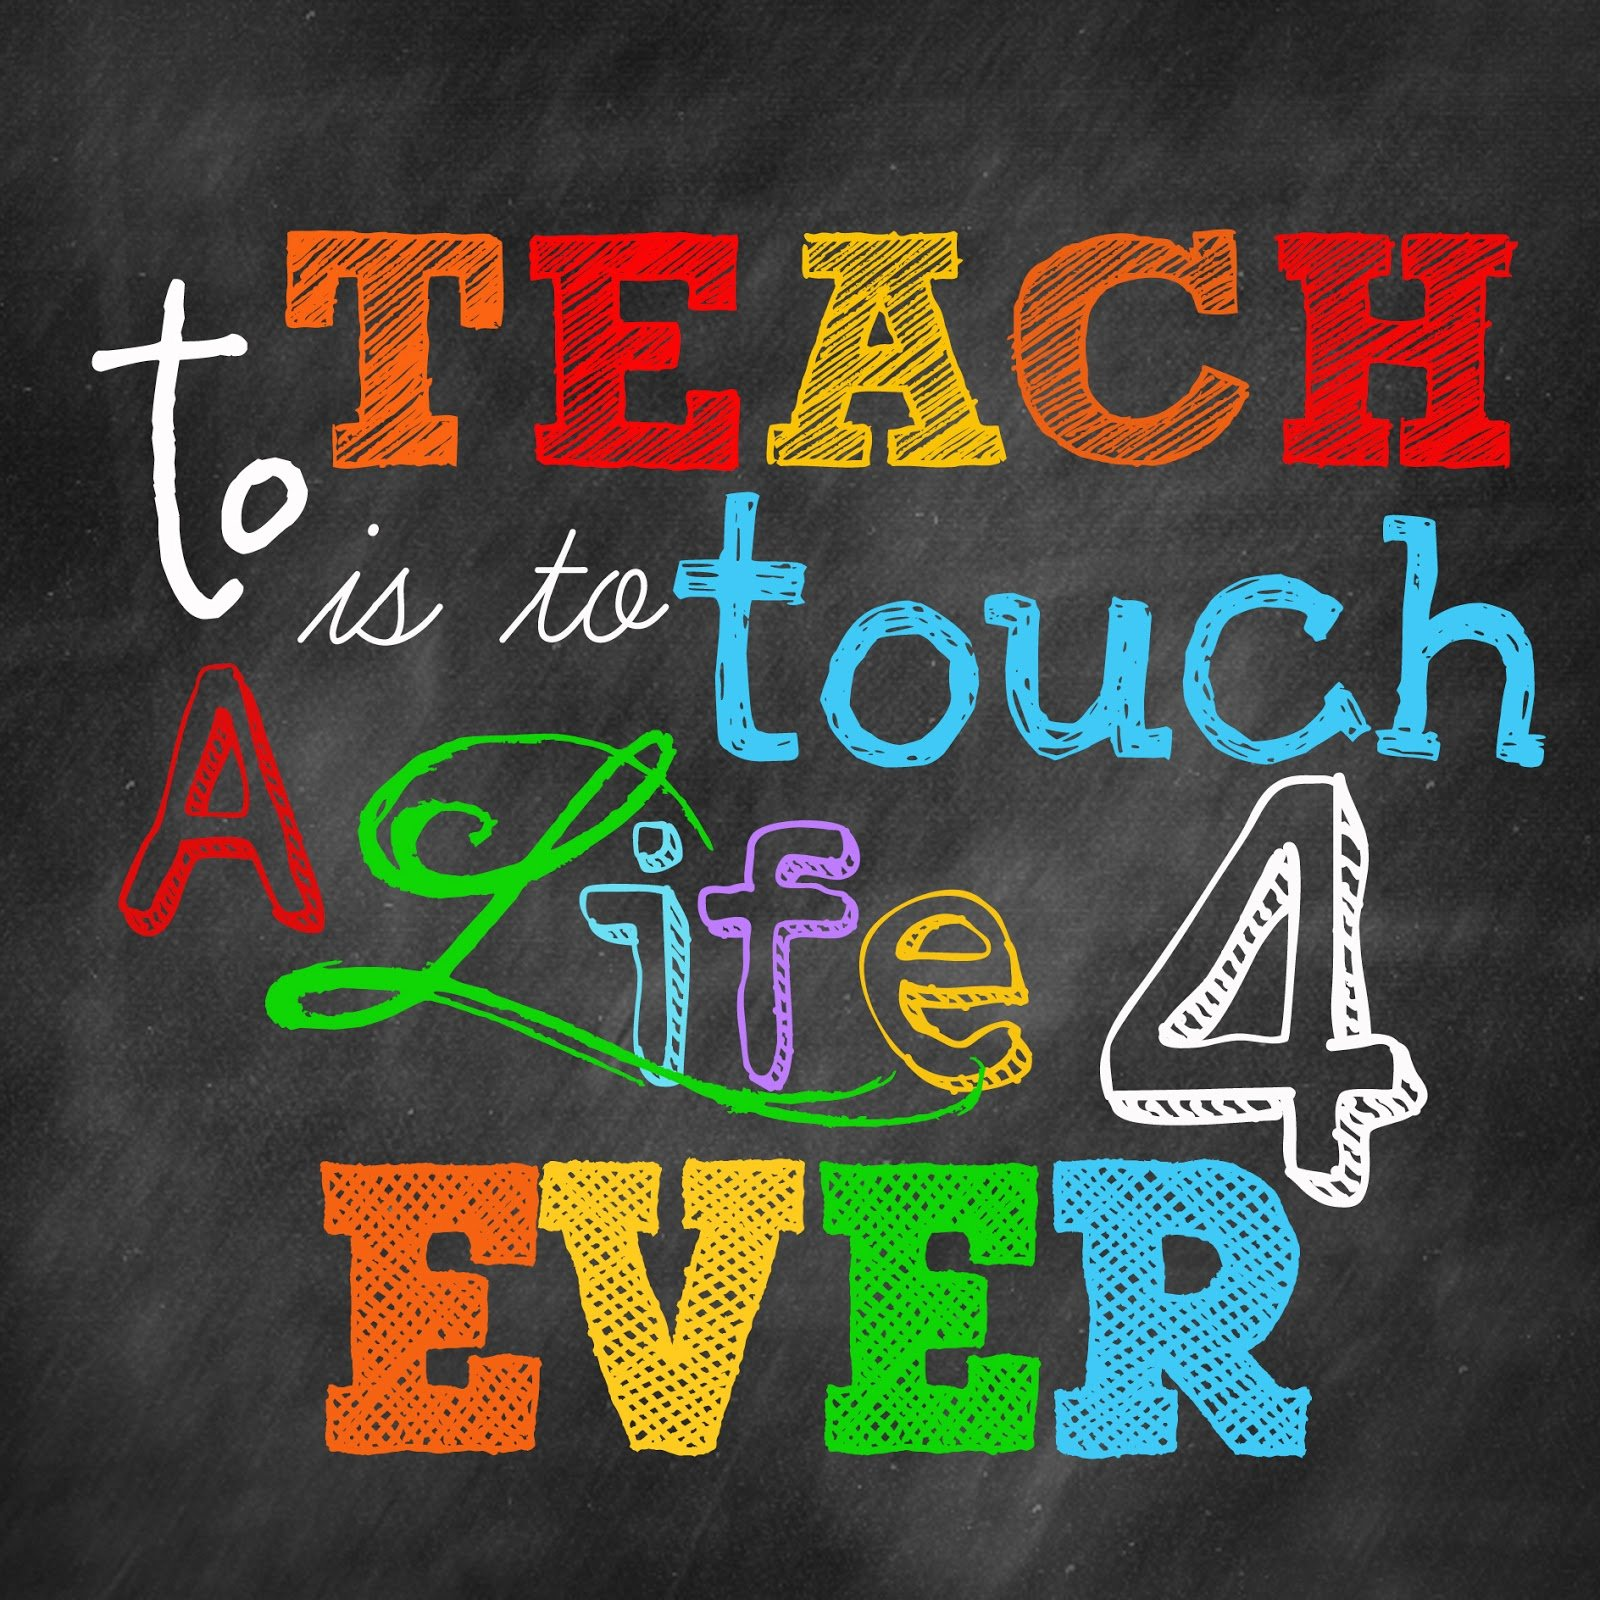 an appreciation of my a p statistics teacher tabitha young Ysop is committed to helping young people become part of who gave us a wonderful lunch for teacher appreciation 6:30 pm - finance team 7:00 pm - tabitha.